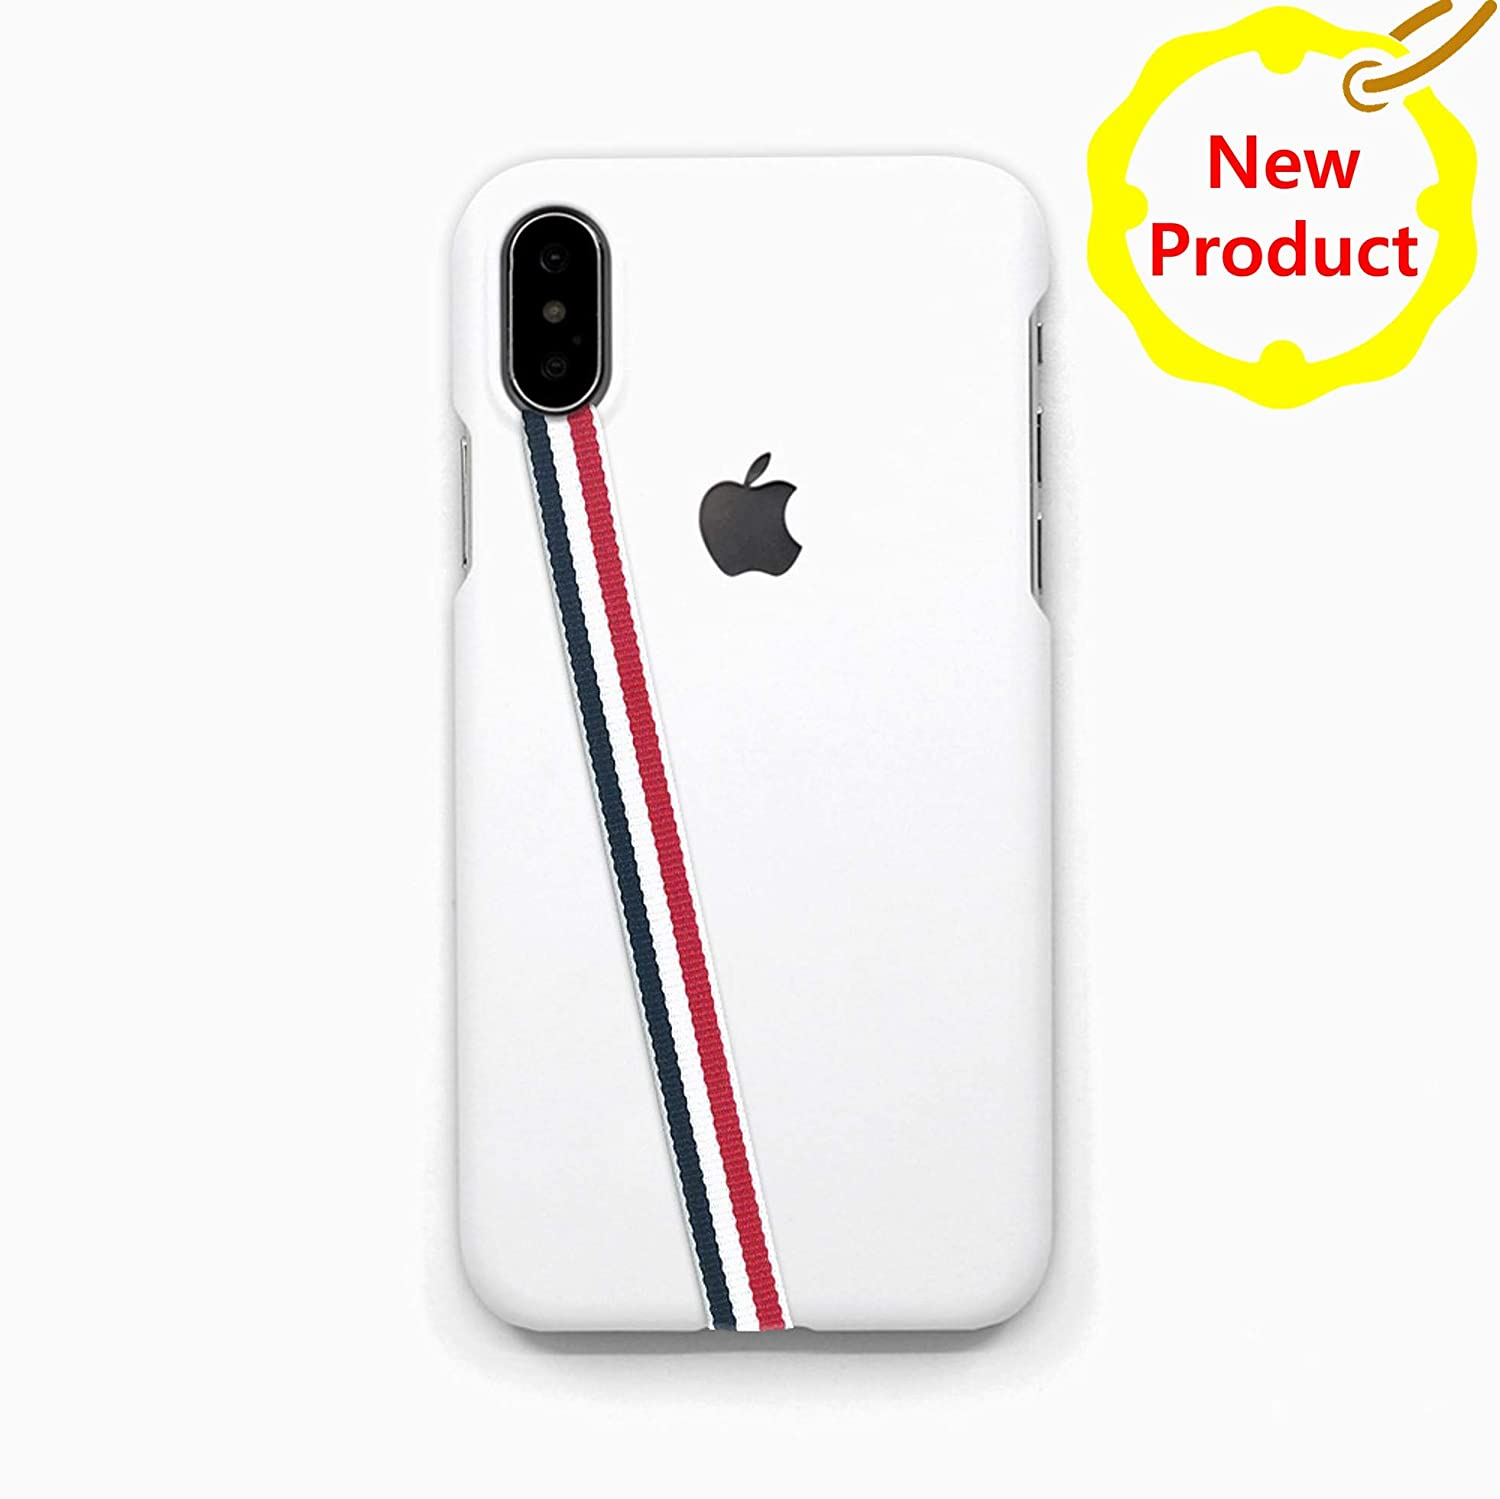 Stripe Italy Upgrade Cell Phone Grips and Design DEZENT Cell Phone Roof Straps